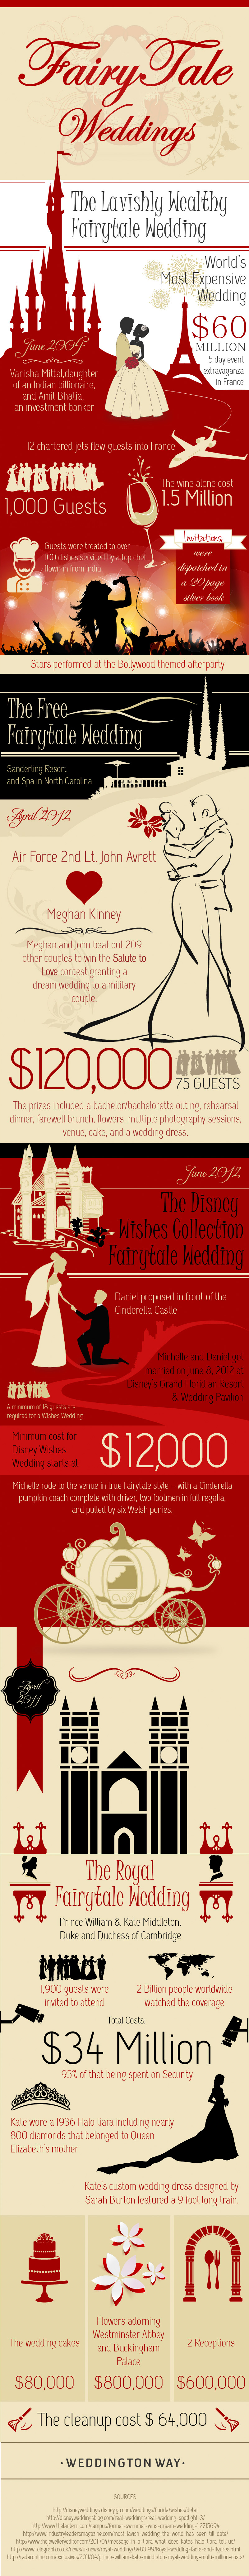 01 2013_4_22-Fairytale-Weddings